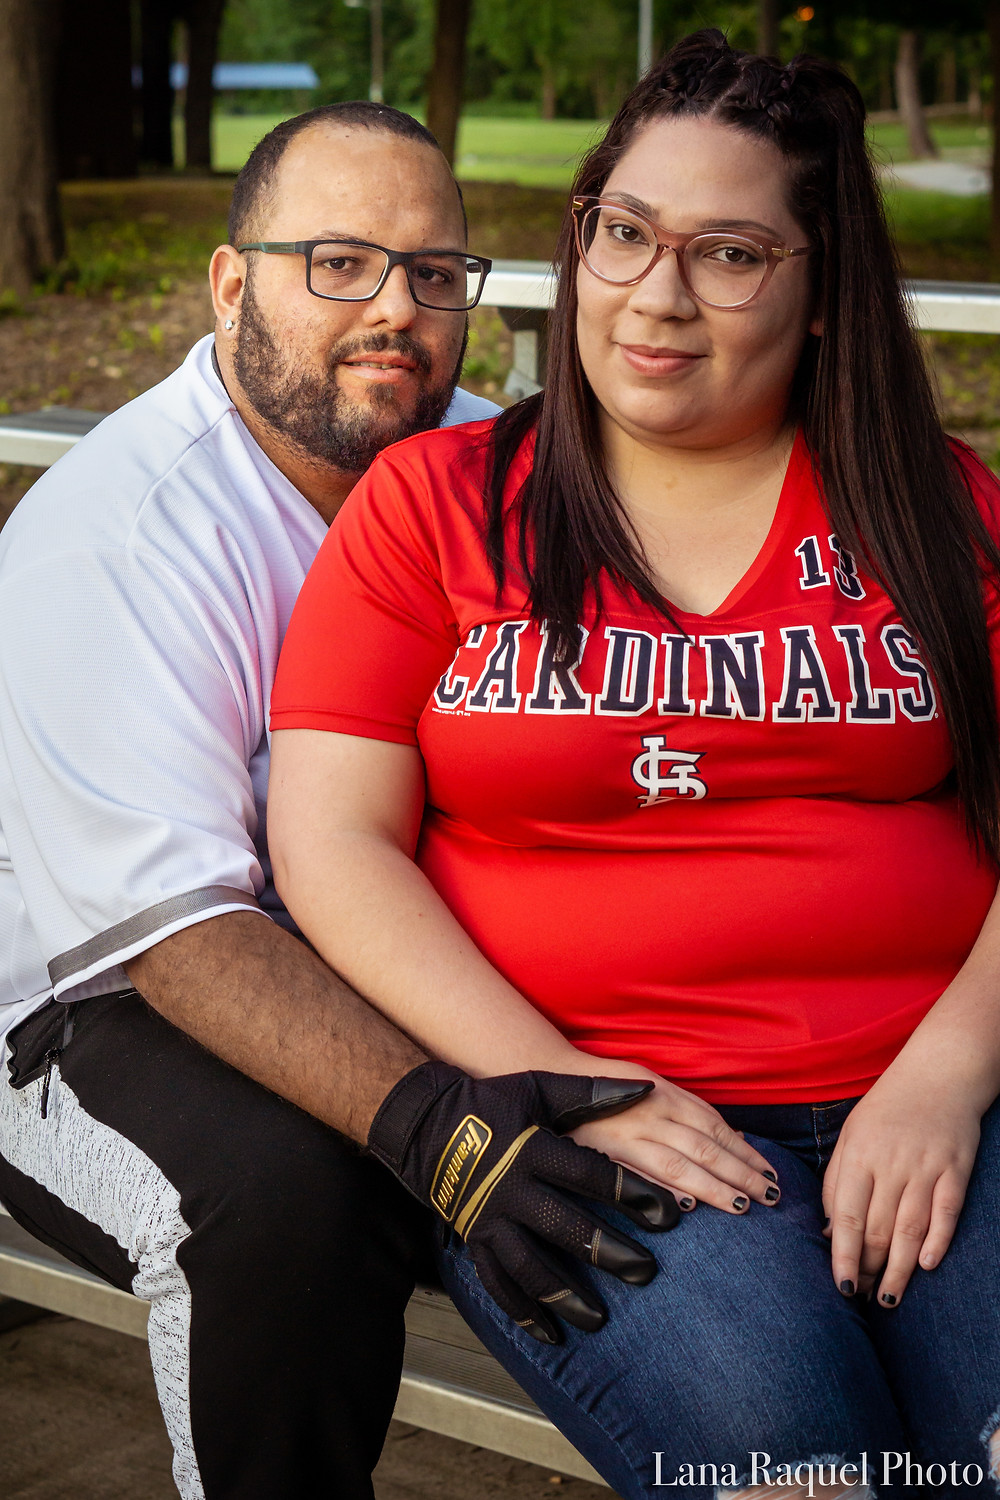 Husband and Wife Portrait on Baseball Bleachers